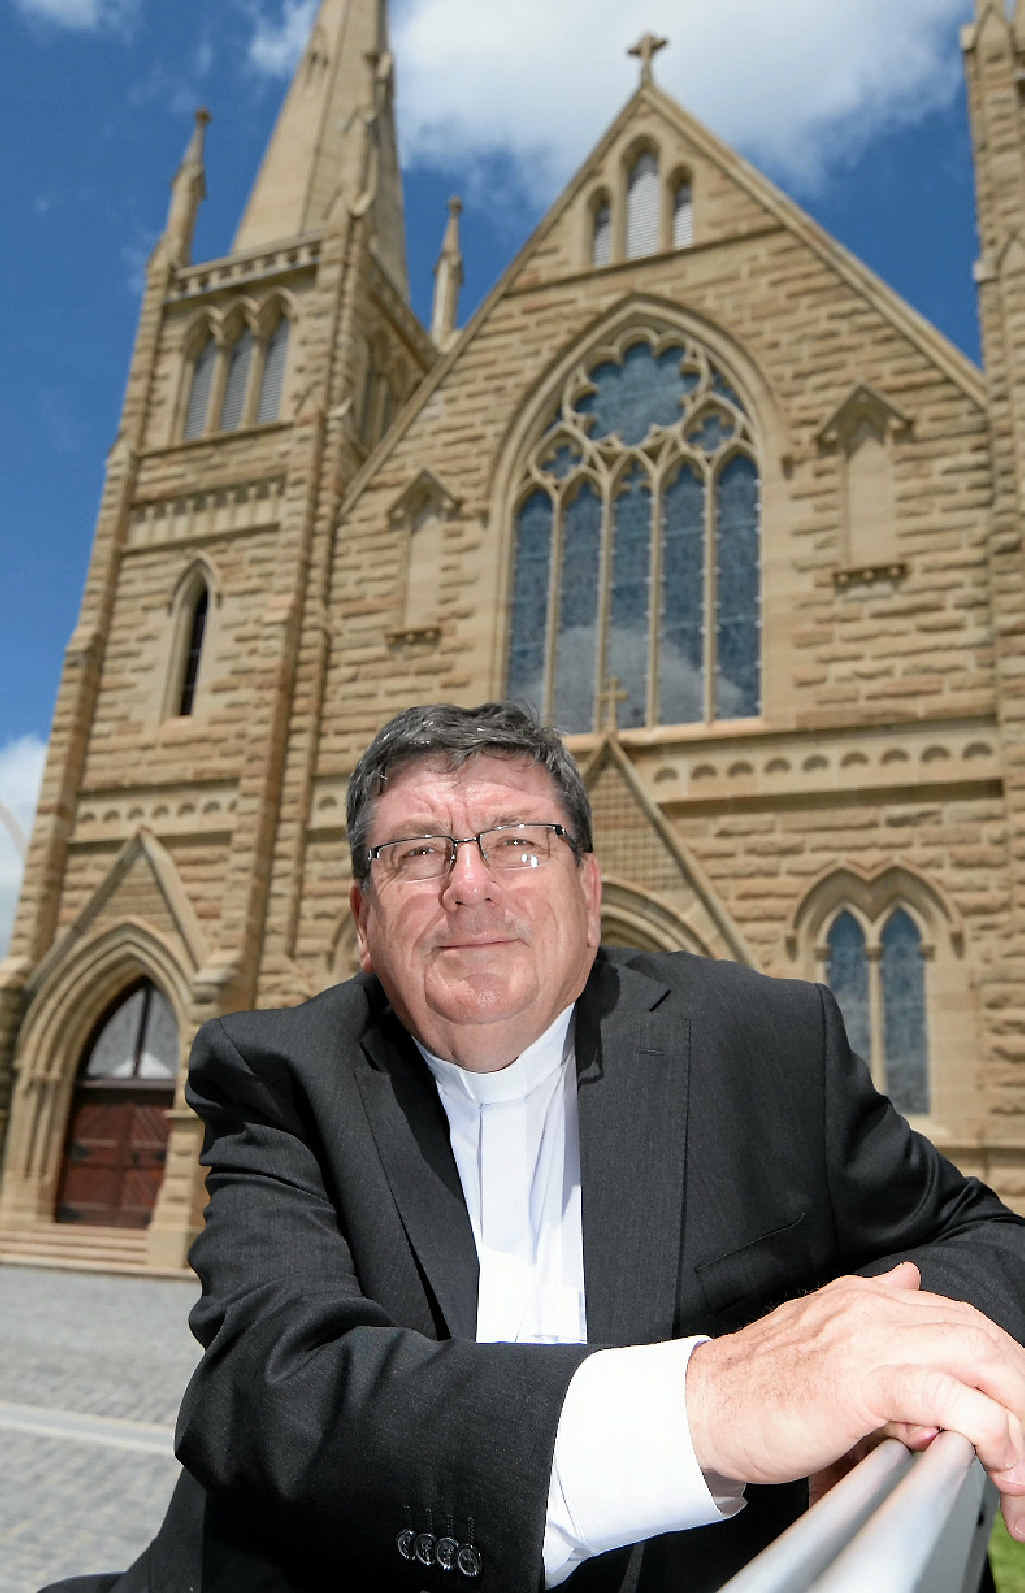 Michael McCarthy will shortly be ordained as the new Bishop of Rockhampton, taking in the Gladstone parish.